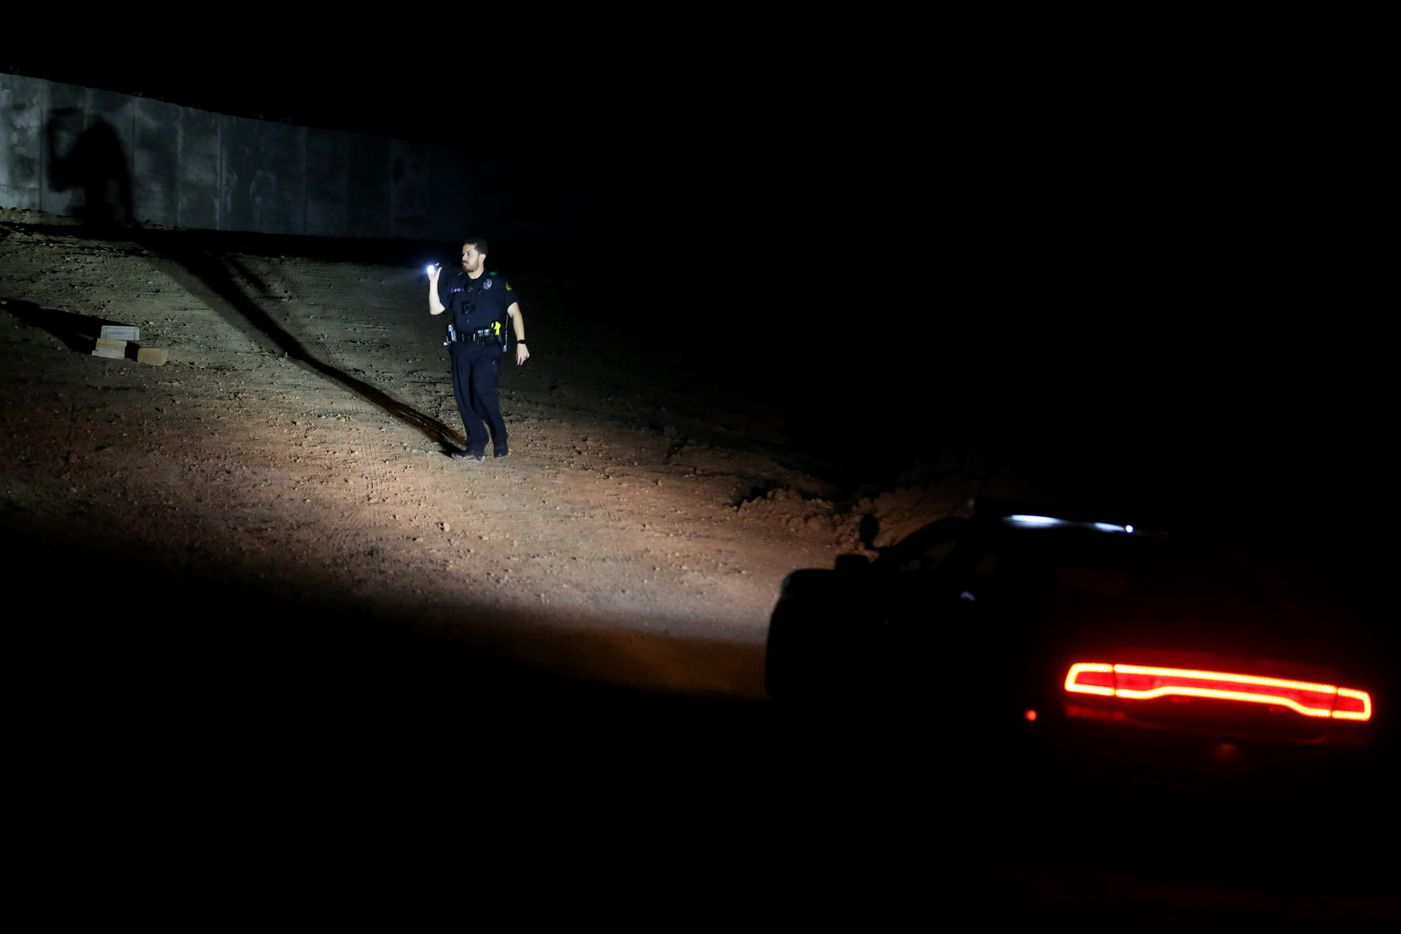 A Dallas Police officer searches an area where Weltzin Garcia Mireles, 26, and Alfonso Roderick Hernandez, 28, might have gone missing Tuesday, at White Rock Lake in Dallas on Wednesday, Feb. 6, 2019.